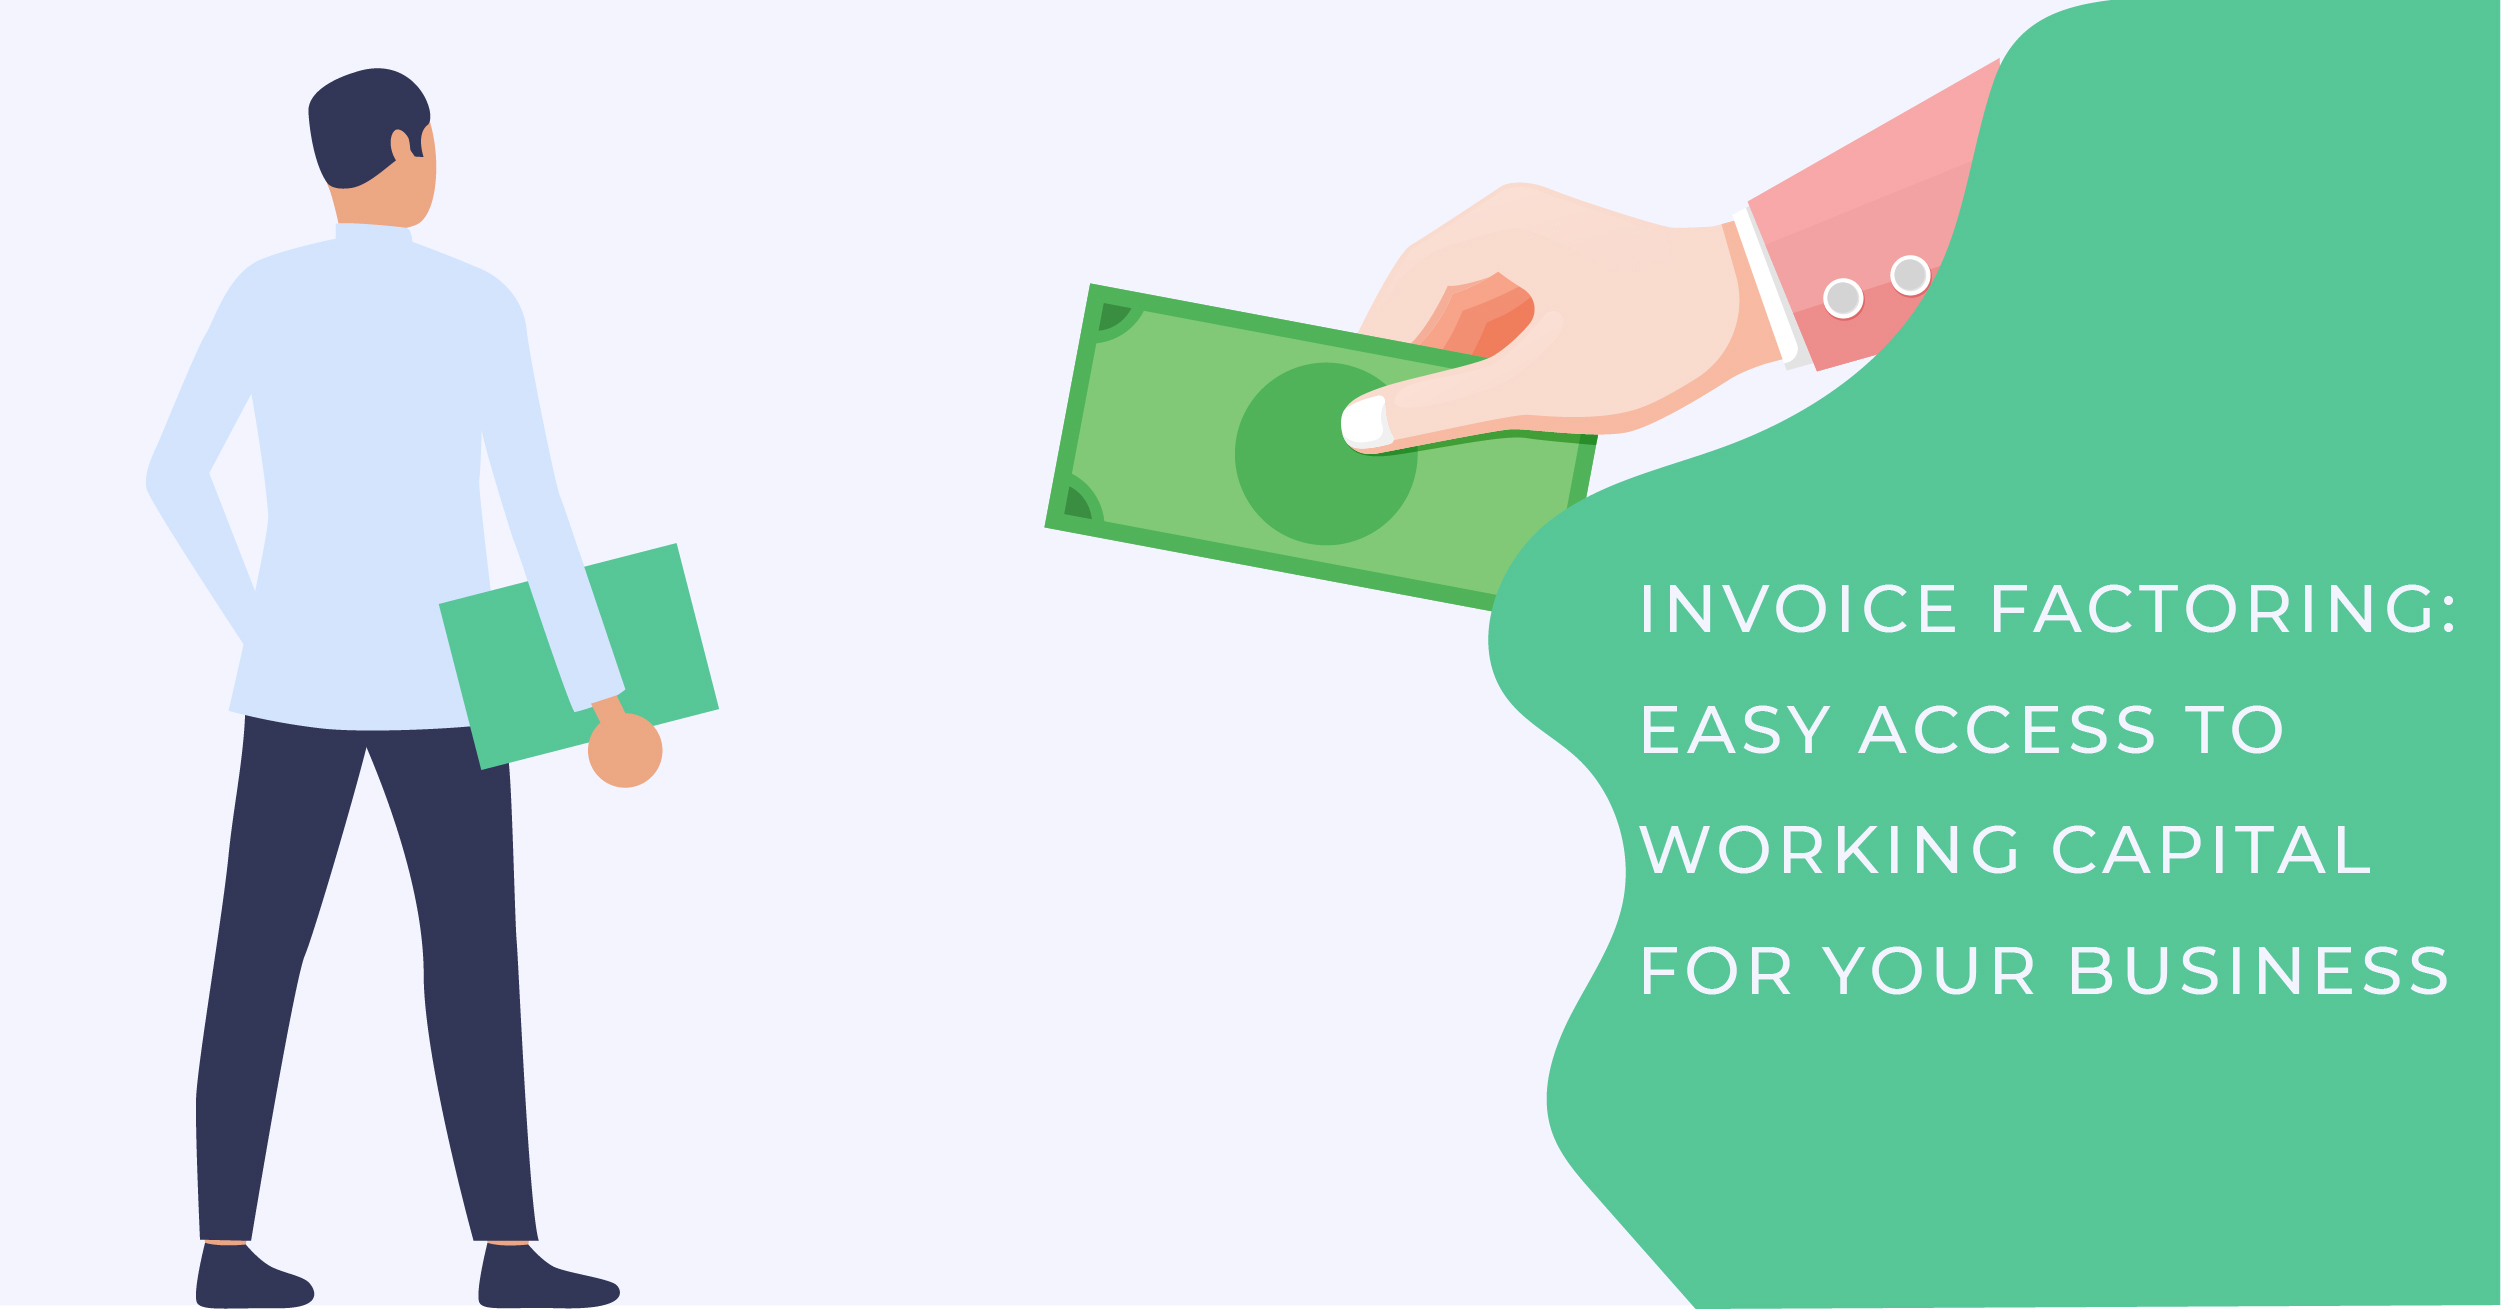 Invoice Factoring: Easy Access to Working Capital for your Business